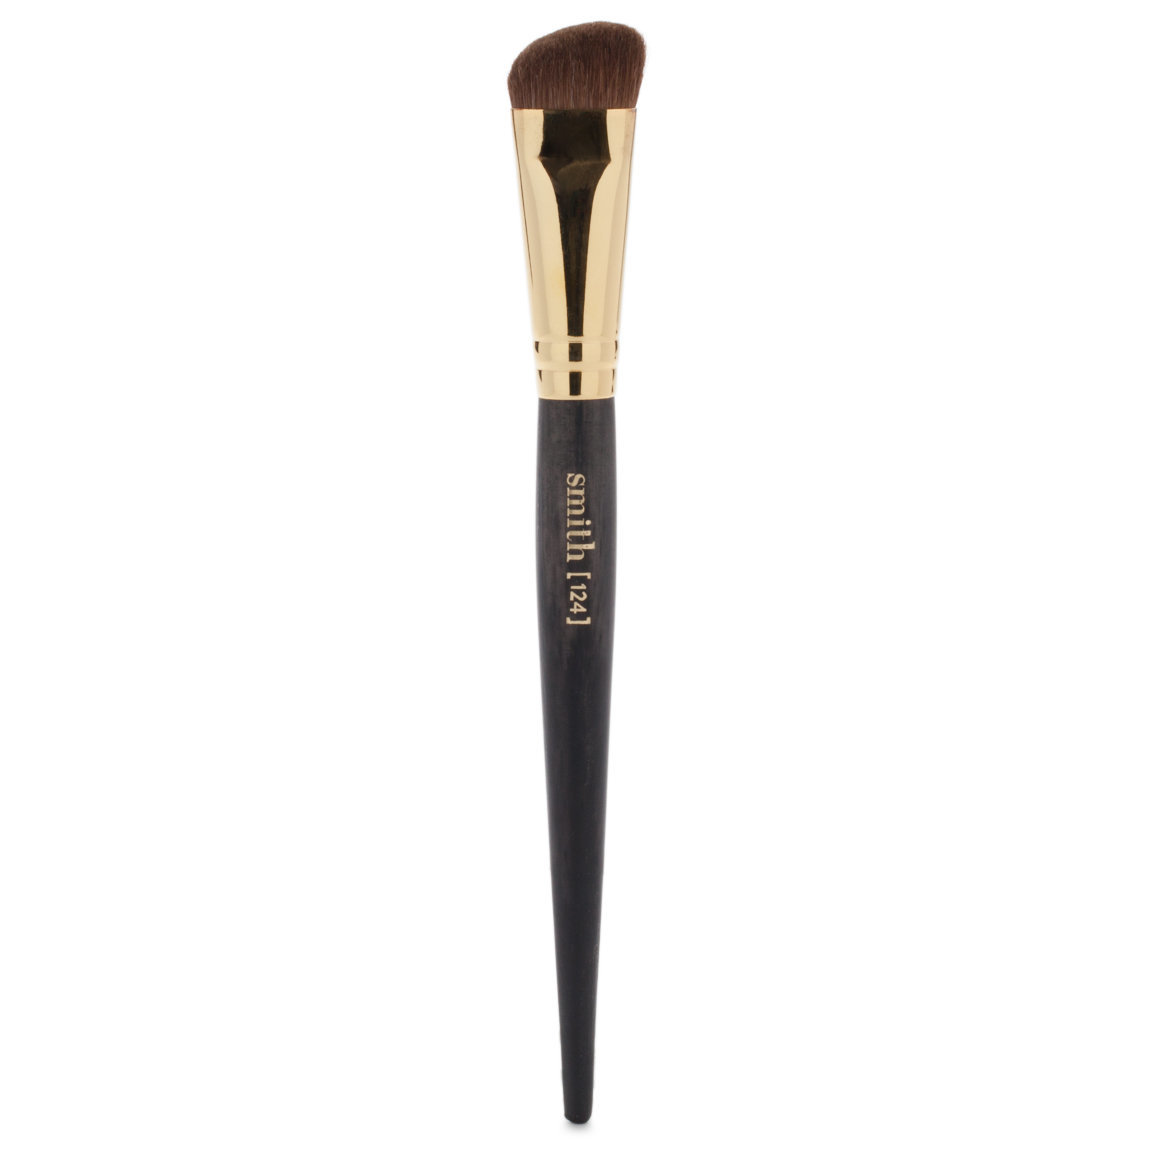 Smith Cosmetics 124 Cream Contour Brush product smear.